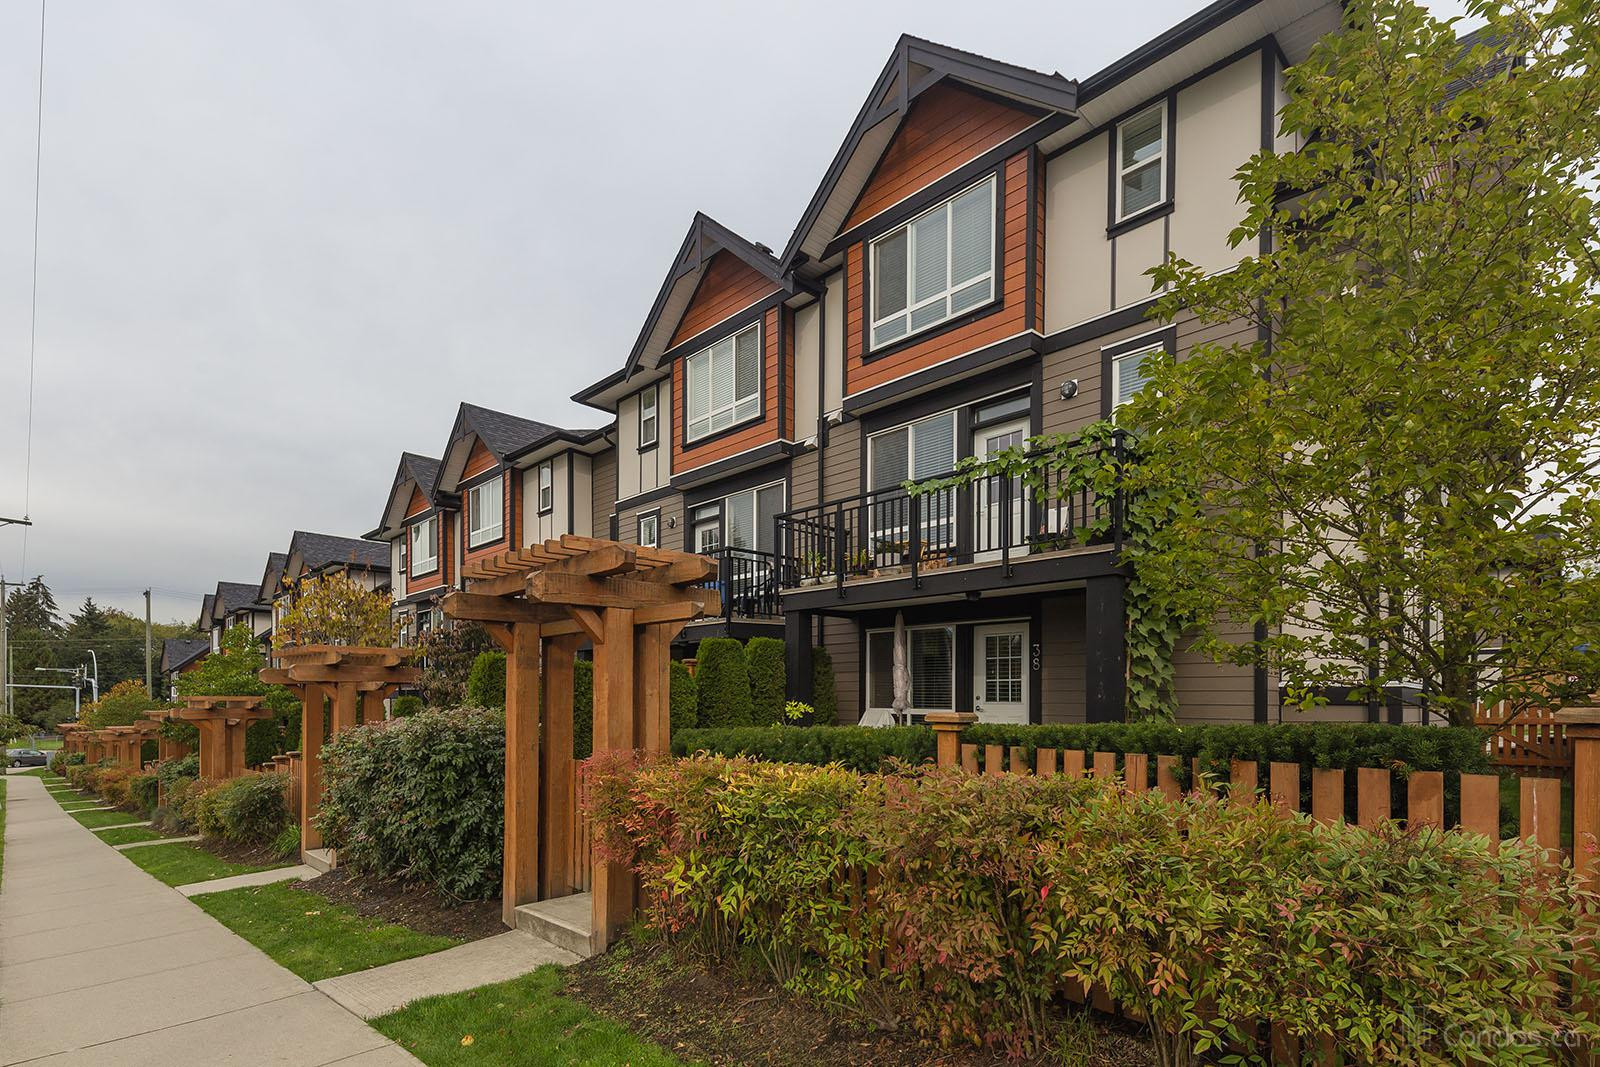 Kendra at 6378 142 St, Surrey 1